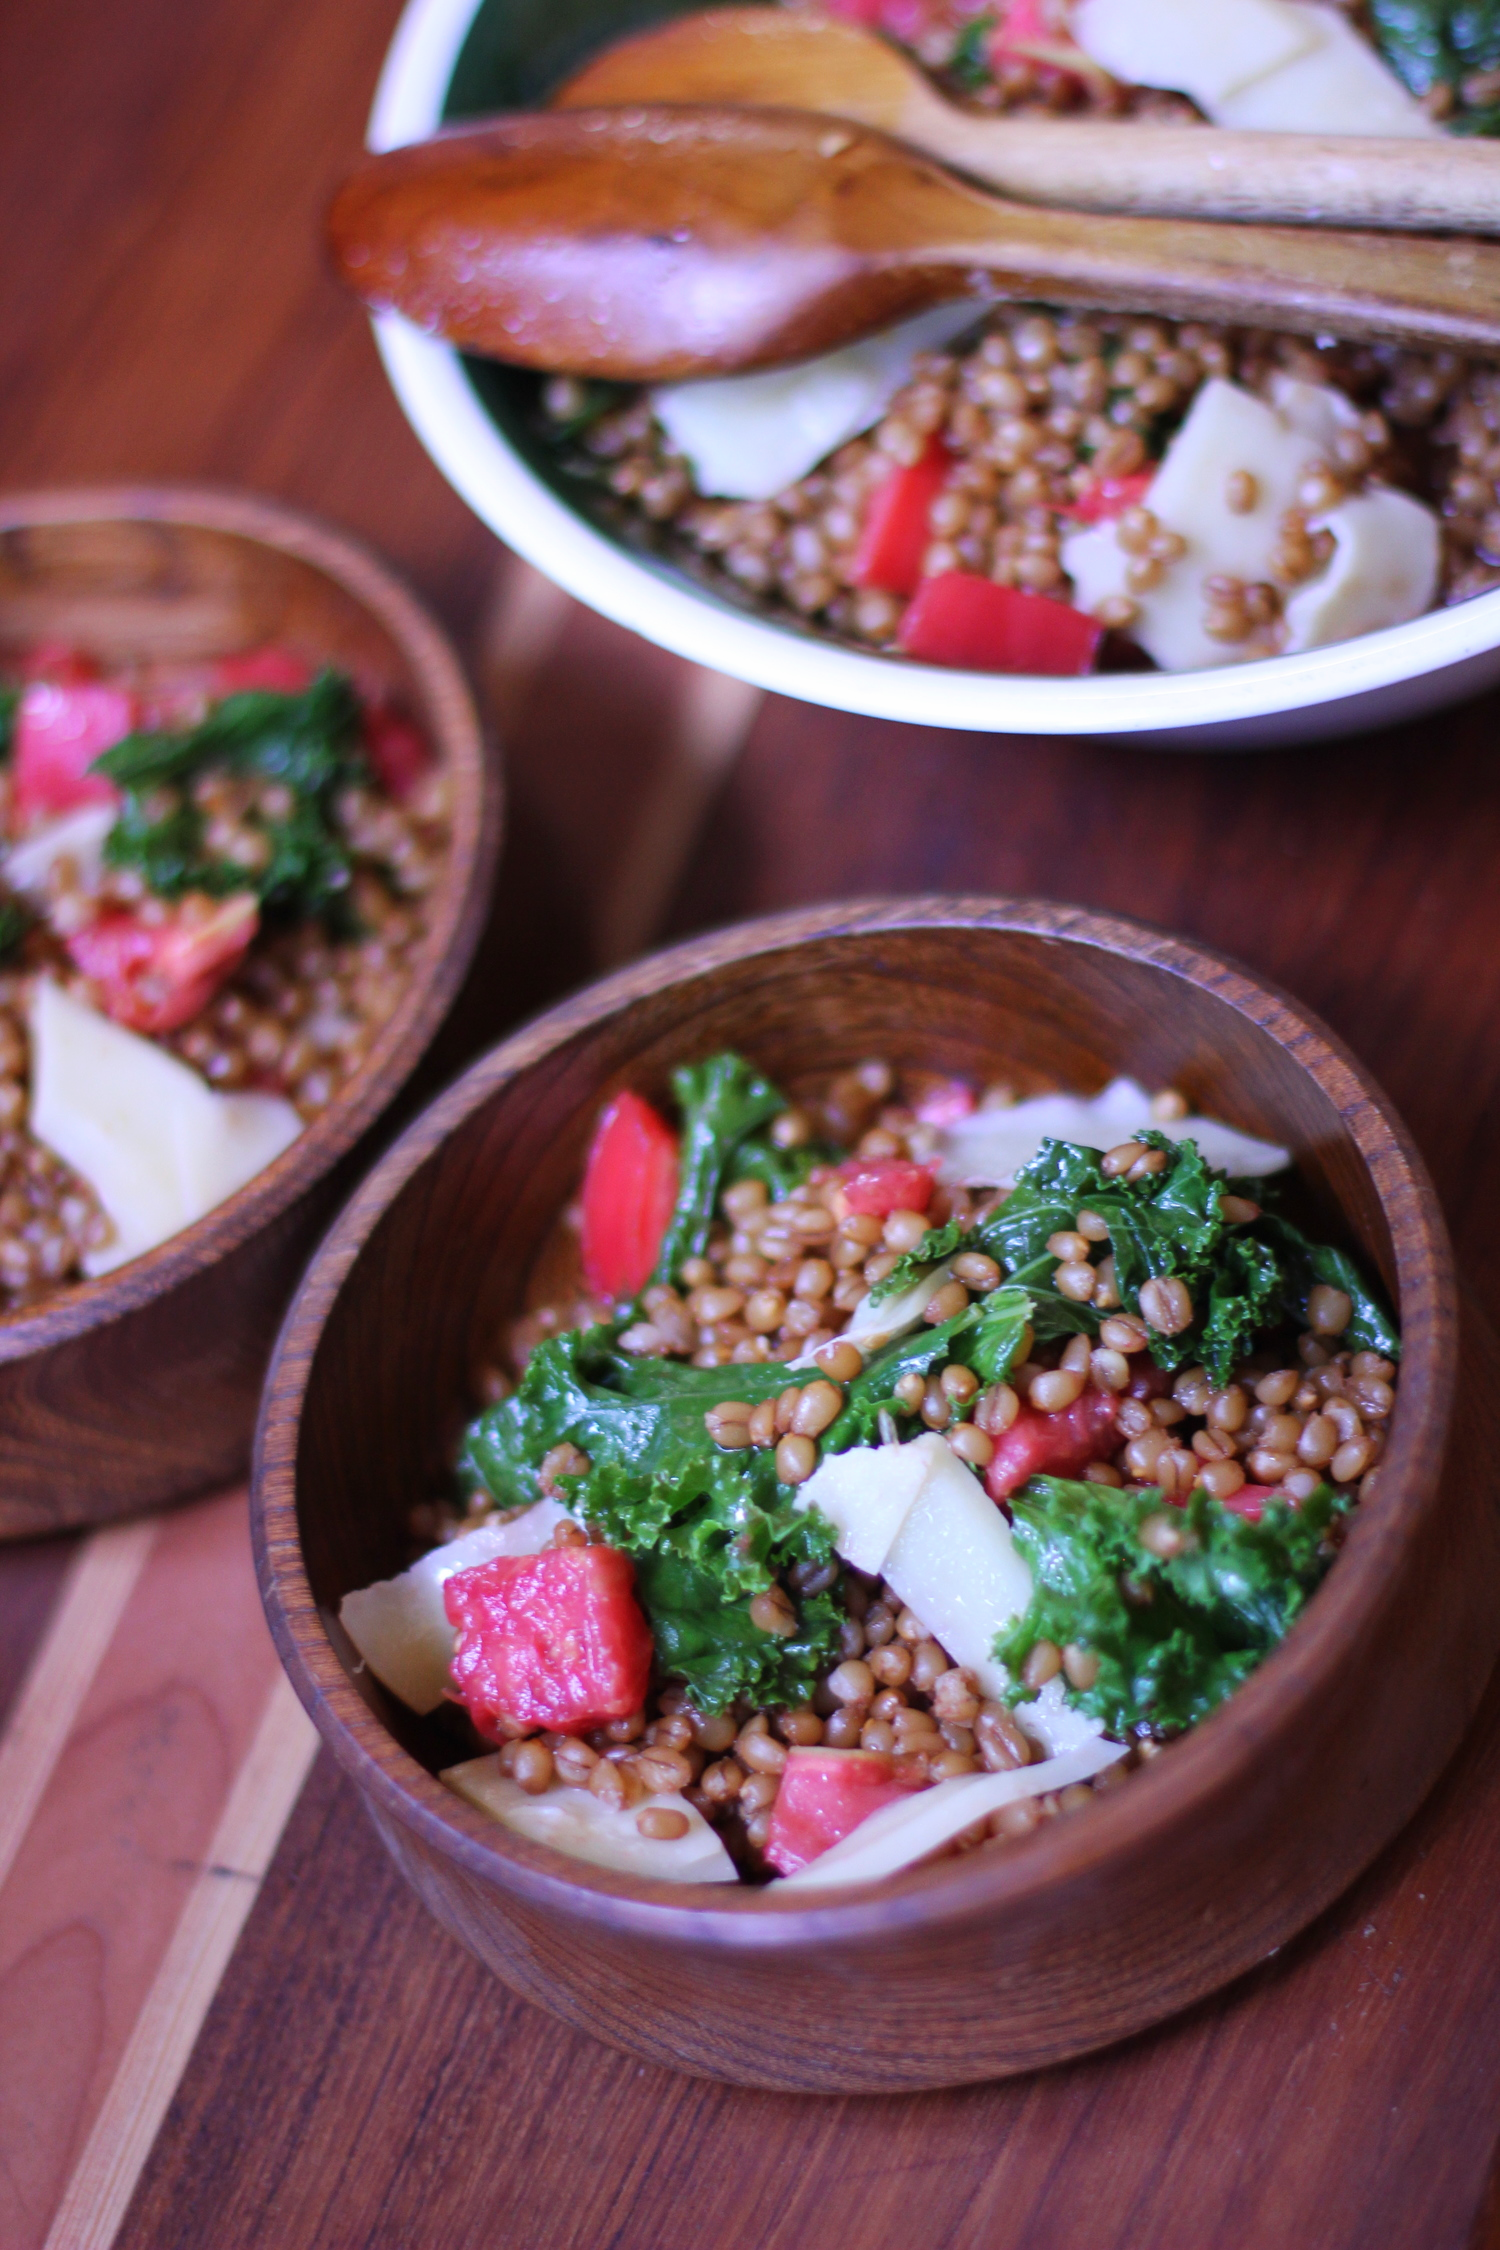 wheatberries and kale